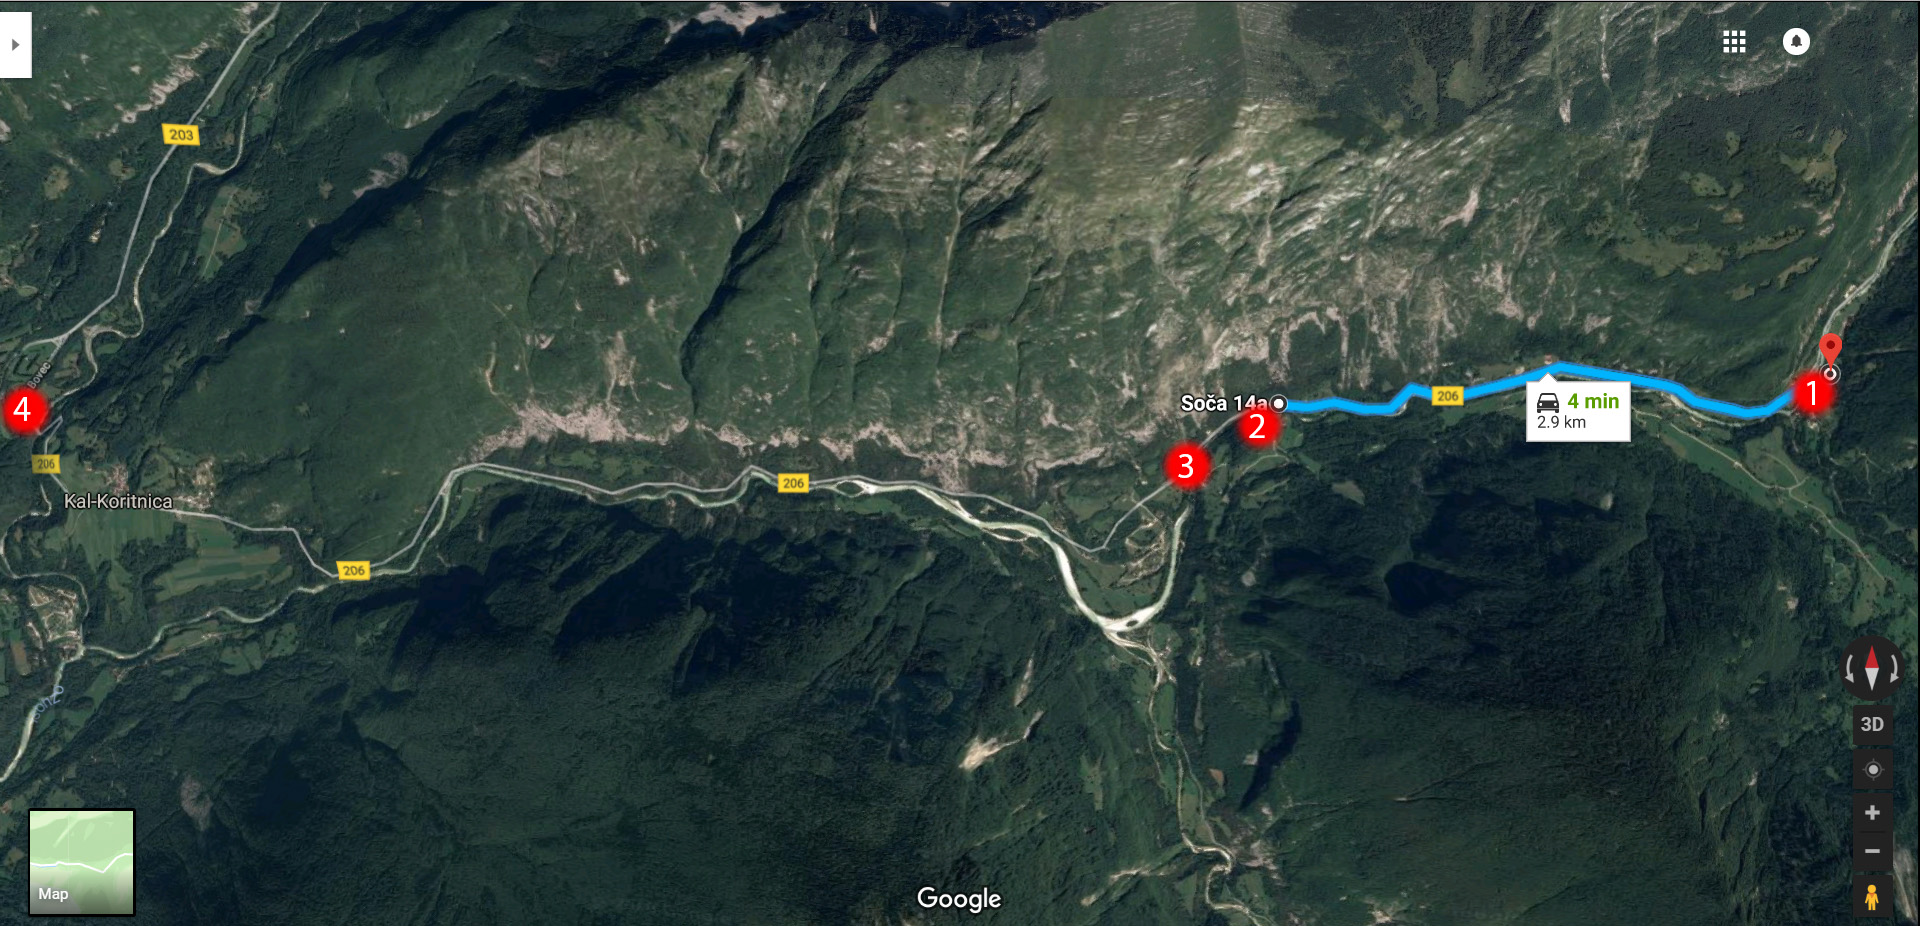 1. Vas na Skali bus stop, Mala Korita (small gorge), the bridge and car park at the camp, 2. Velika Korita (great gorge) and the car park at Soca 14a, 3. Bus stop at Lepena, 4. Bovec. The blue trail indicates the drive from the small to the great gorge. You can also walk this trail along the river - it's beautiful and will take around 30 minutes.